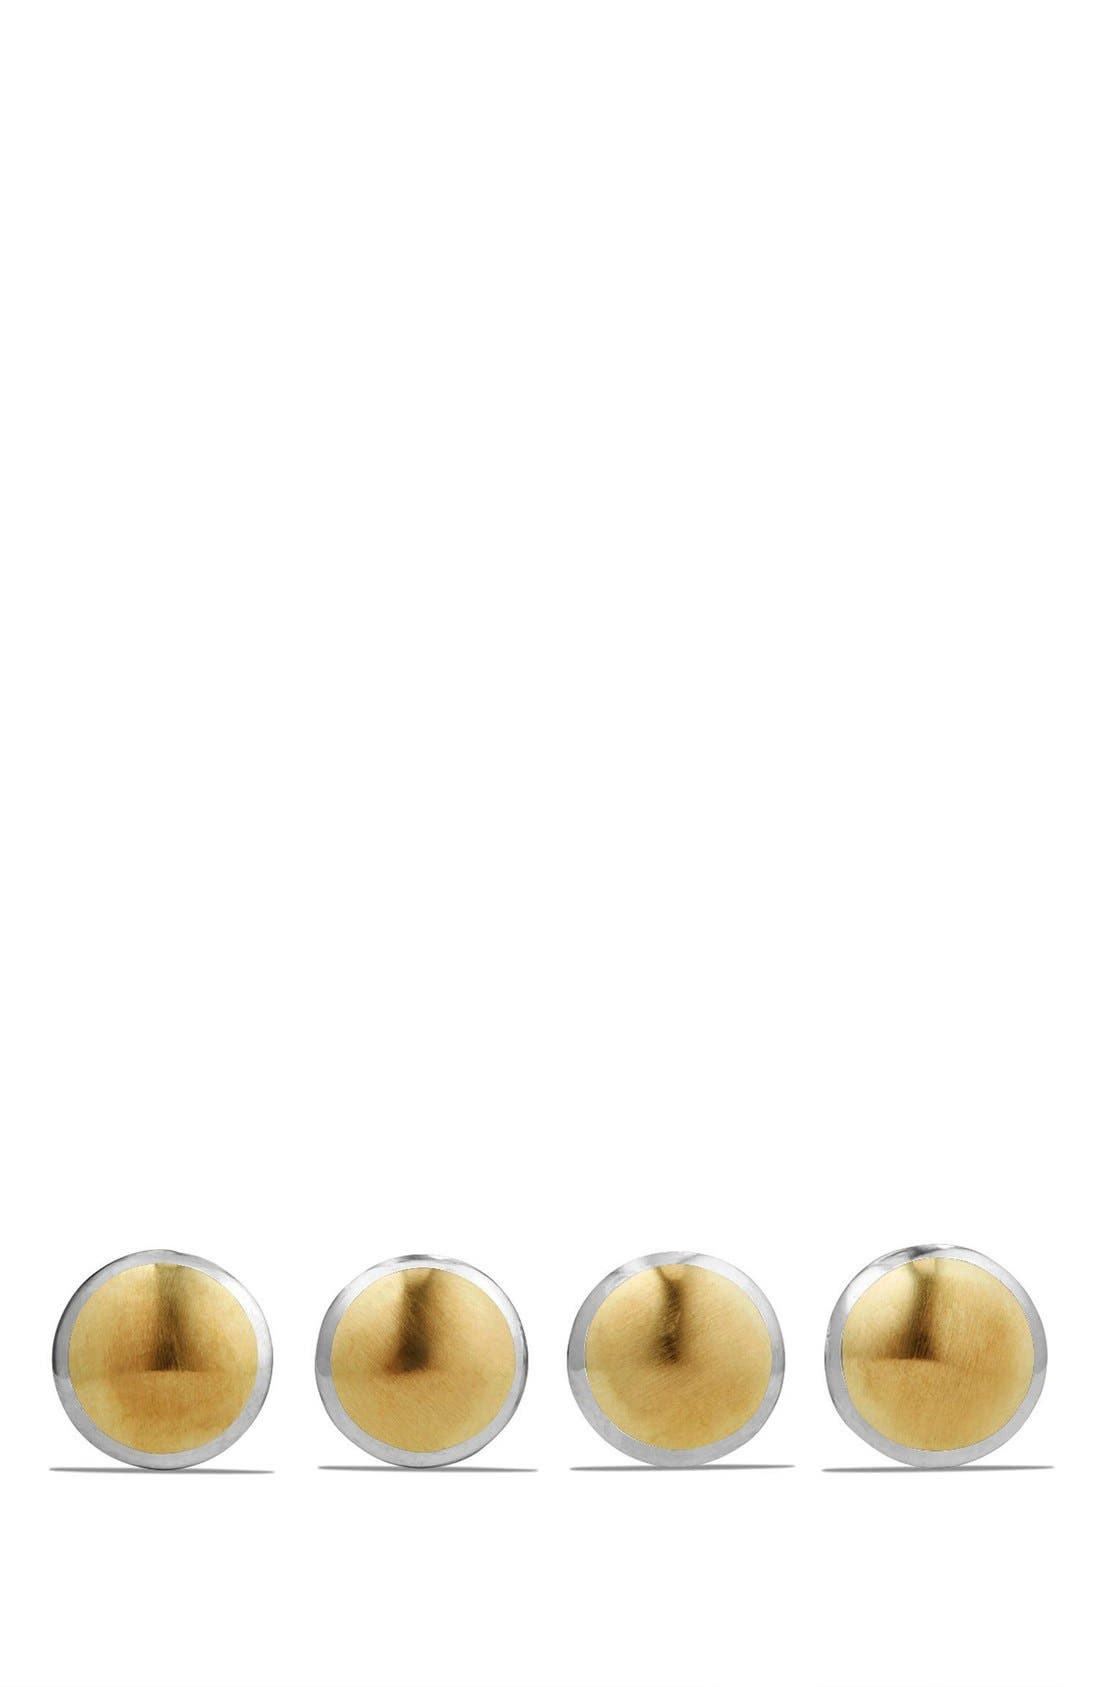 Alternate Image 1 Selected - David Yurman Streamline Set of 4 Shirt Studs with 18K Gold